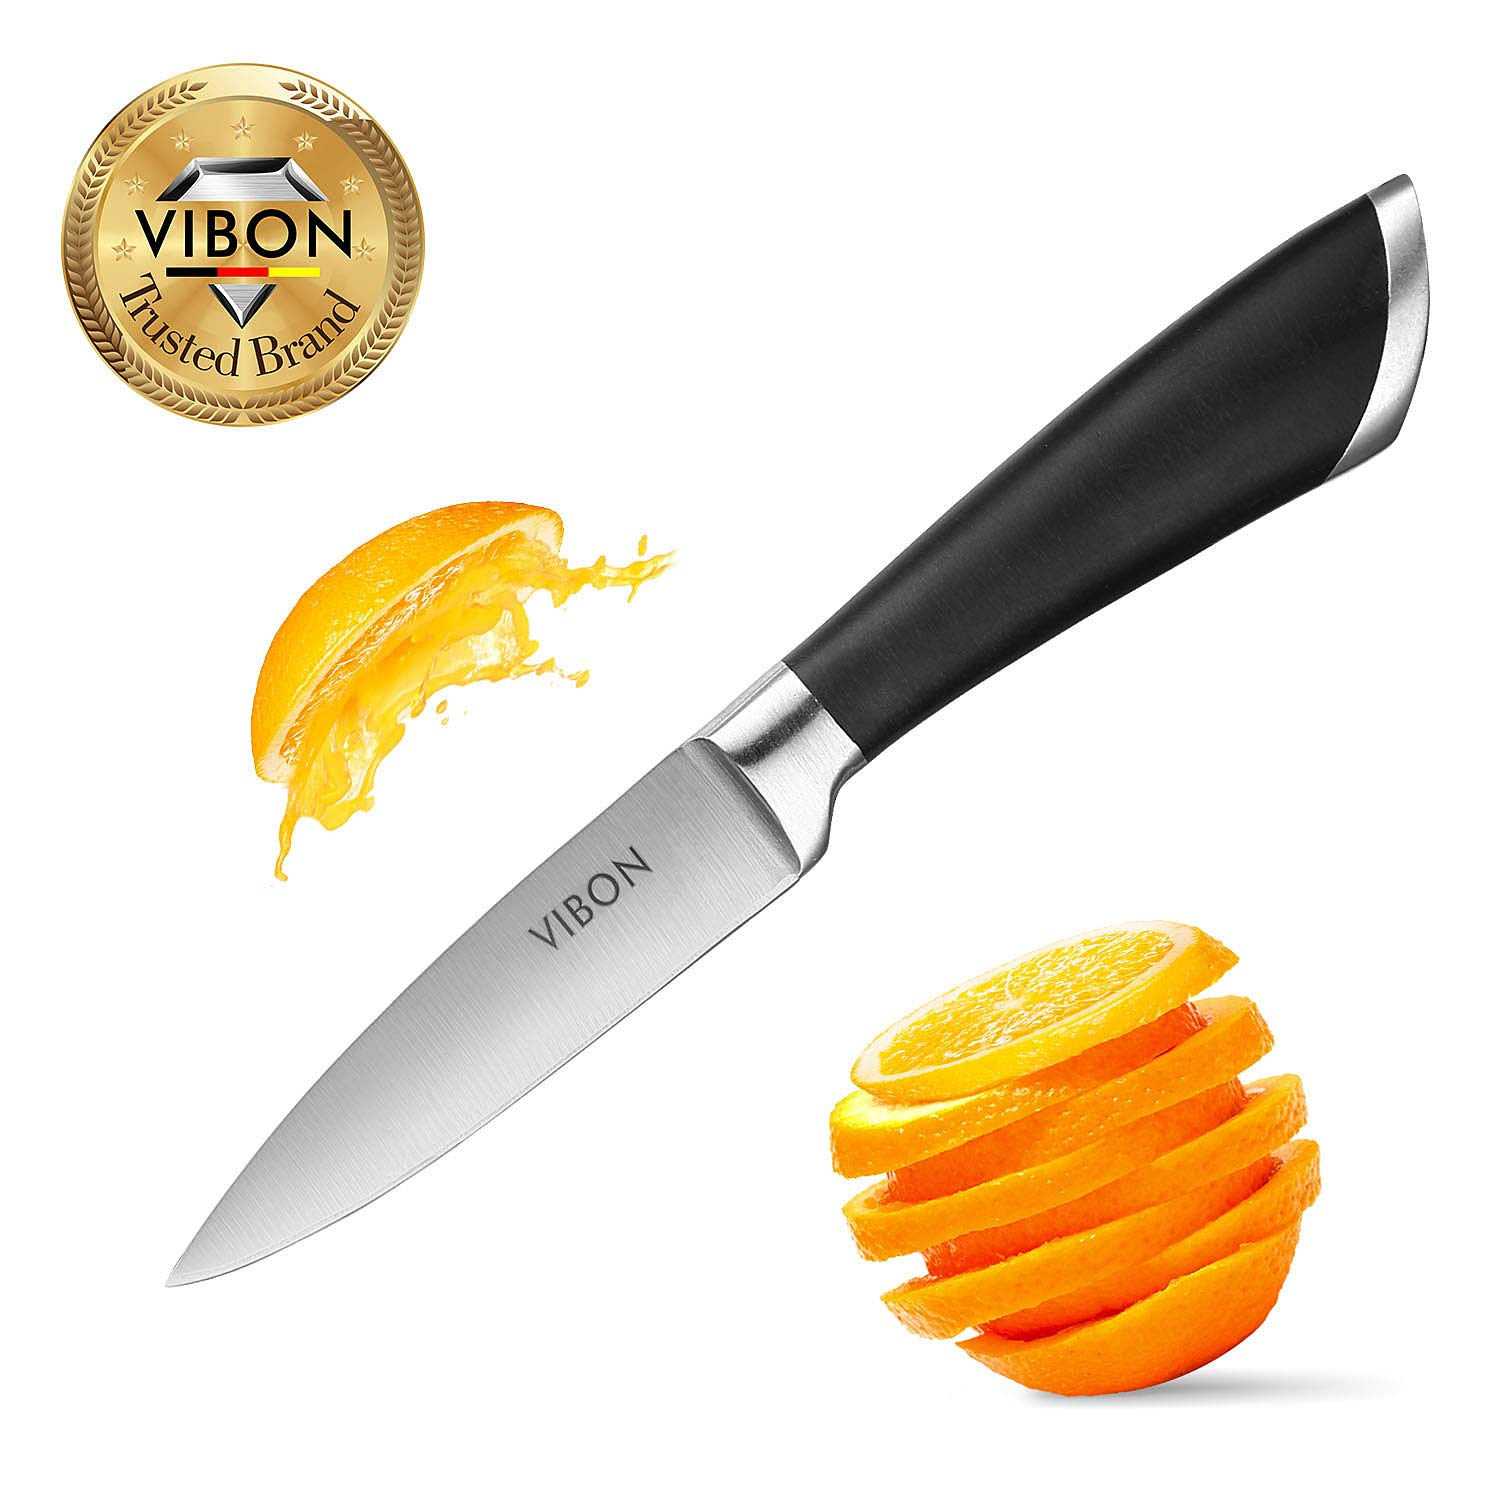 VIBON 3.5 Inches Paring Knife, Fruit Knife Ktchen Vegetable Cutlery by VIBON